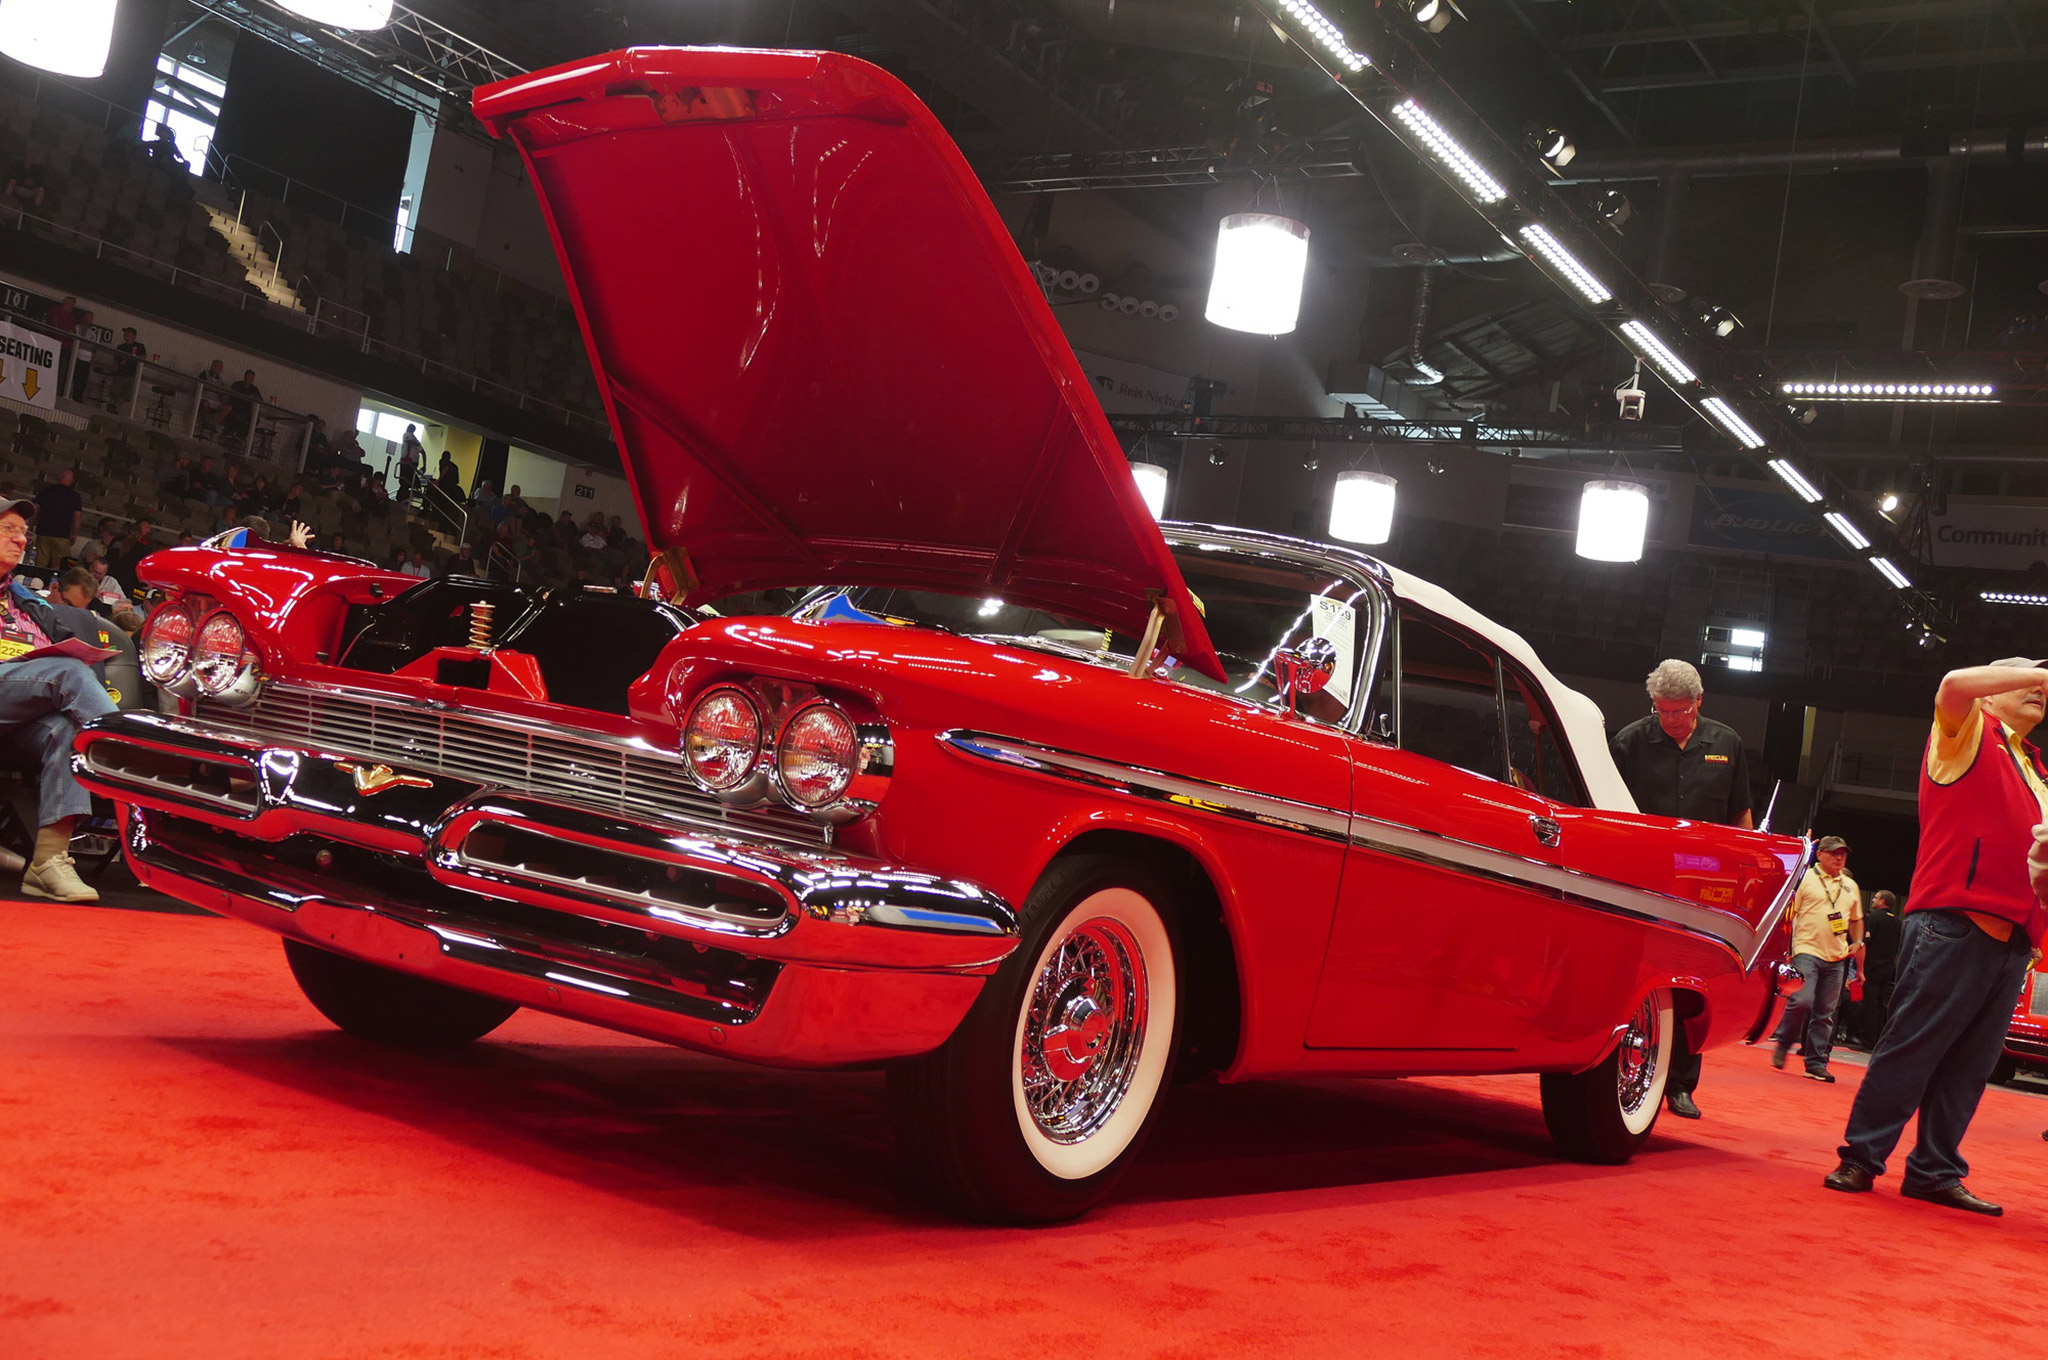 Here is the top non-muscle Chrysler selling over the weekend, a restored 1959 Desoto Firesweep convertible with low mileage that took the hammer down at $130,000.